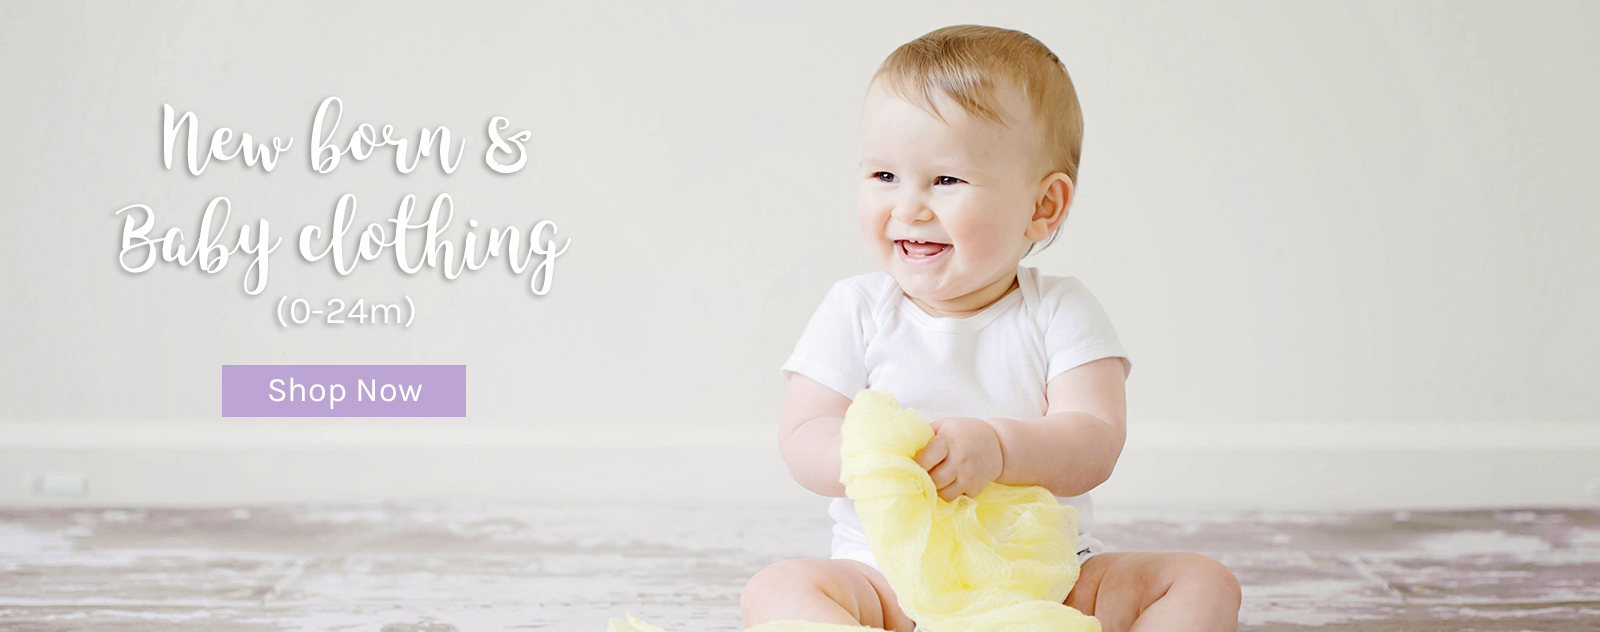 New born & Baby clothing Category